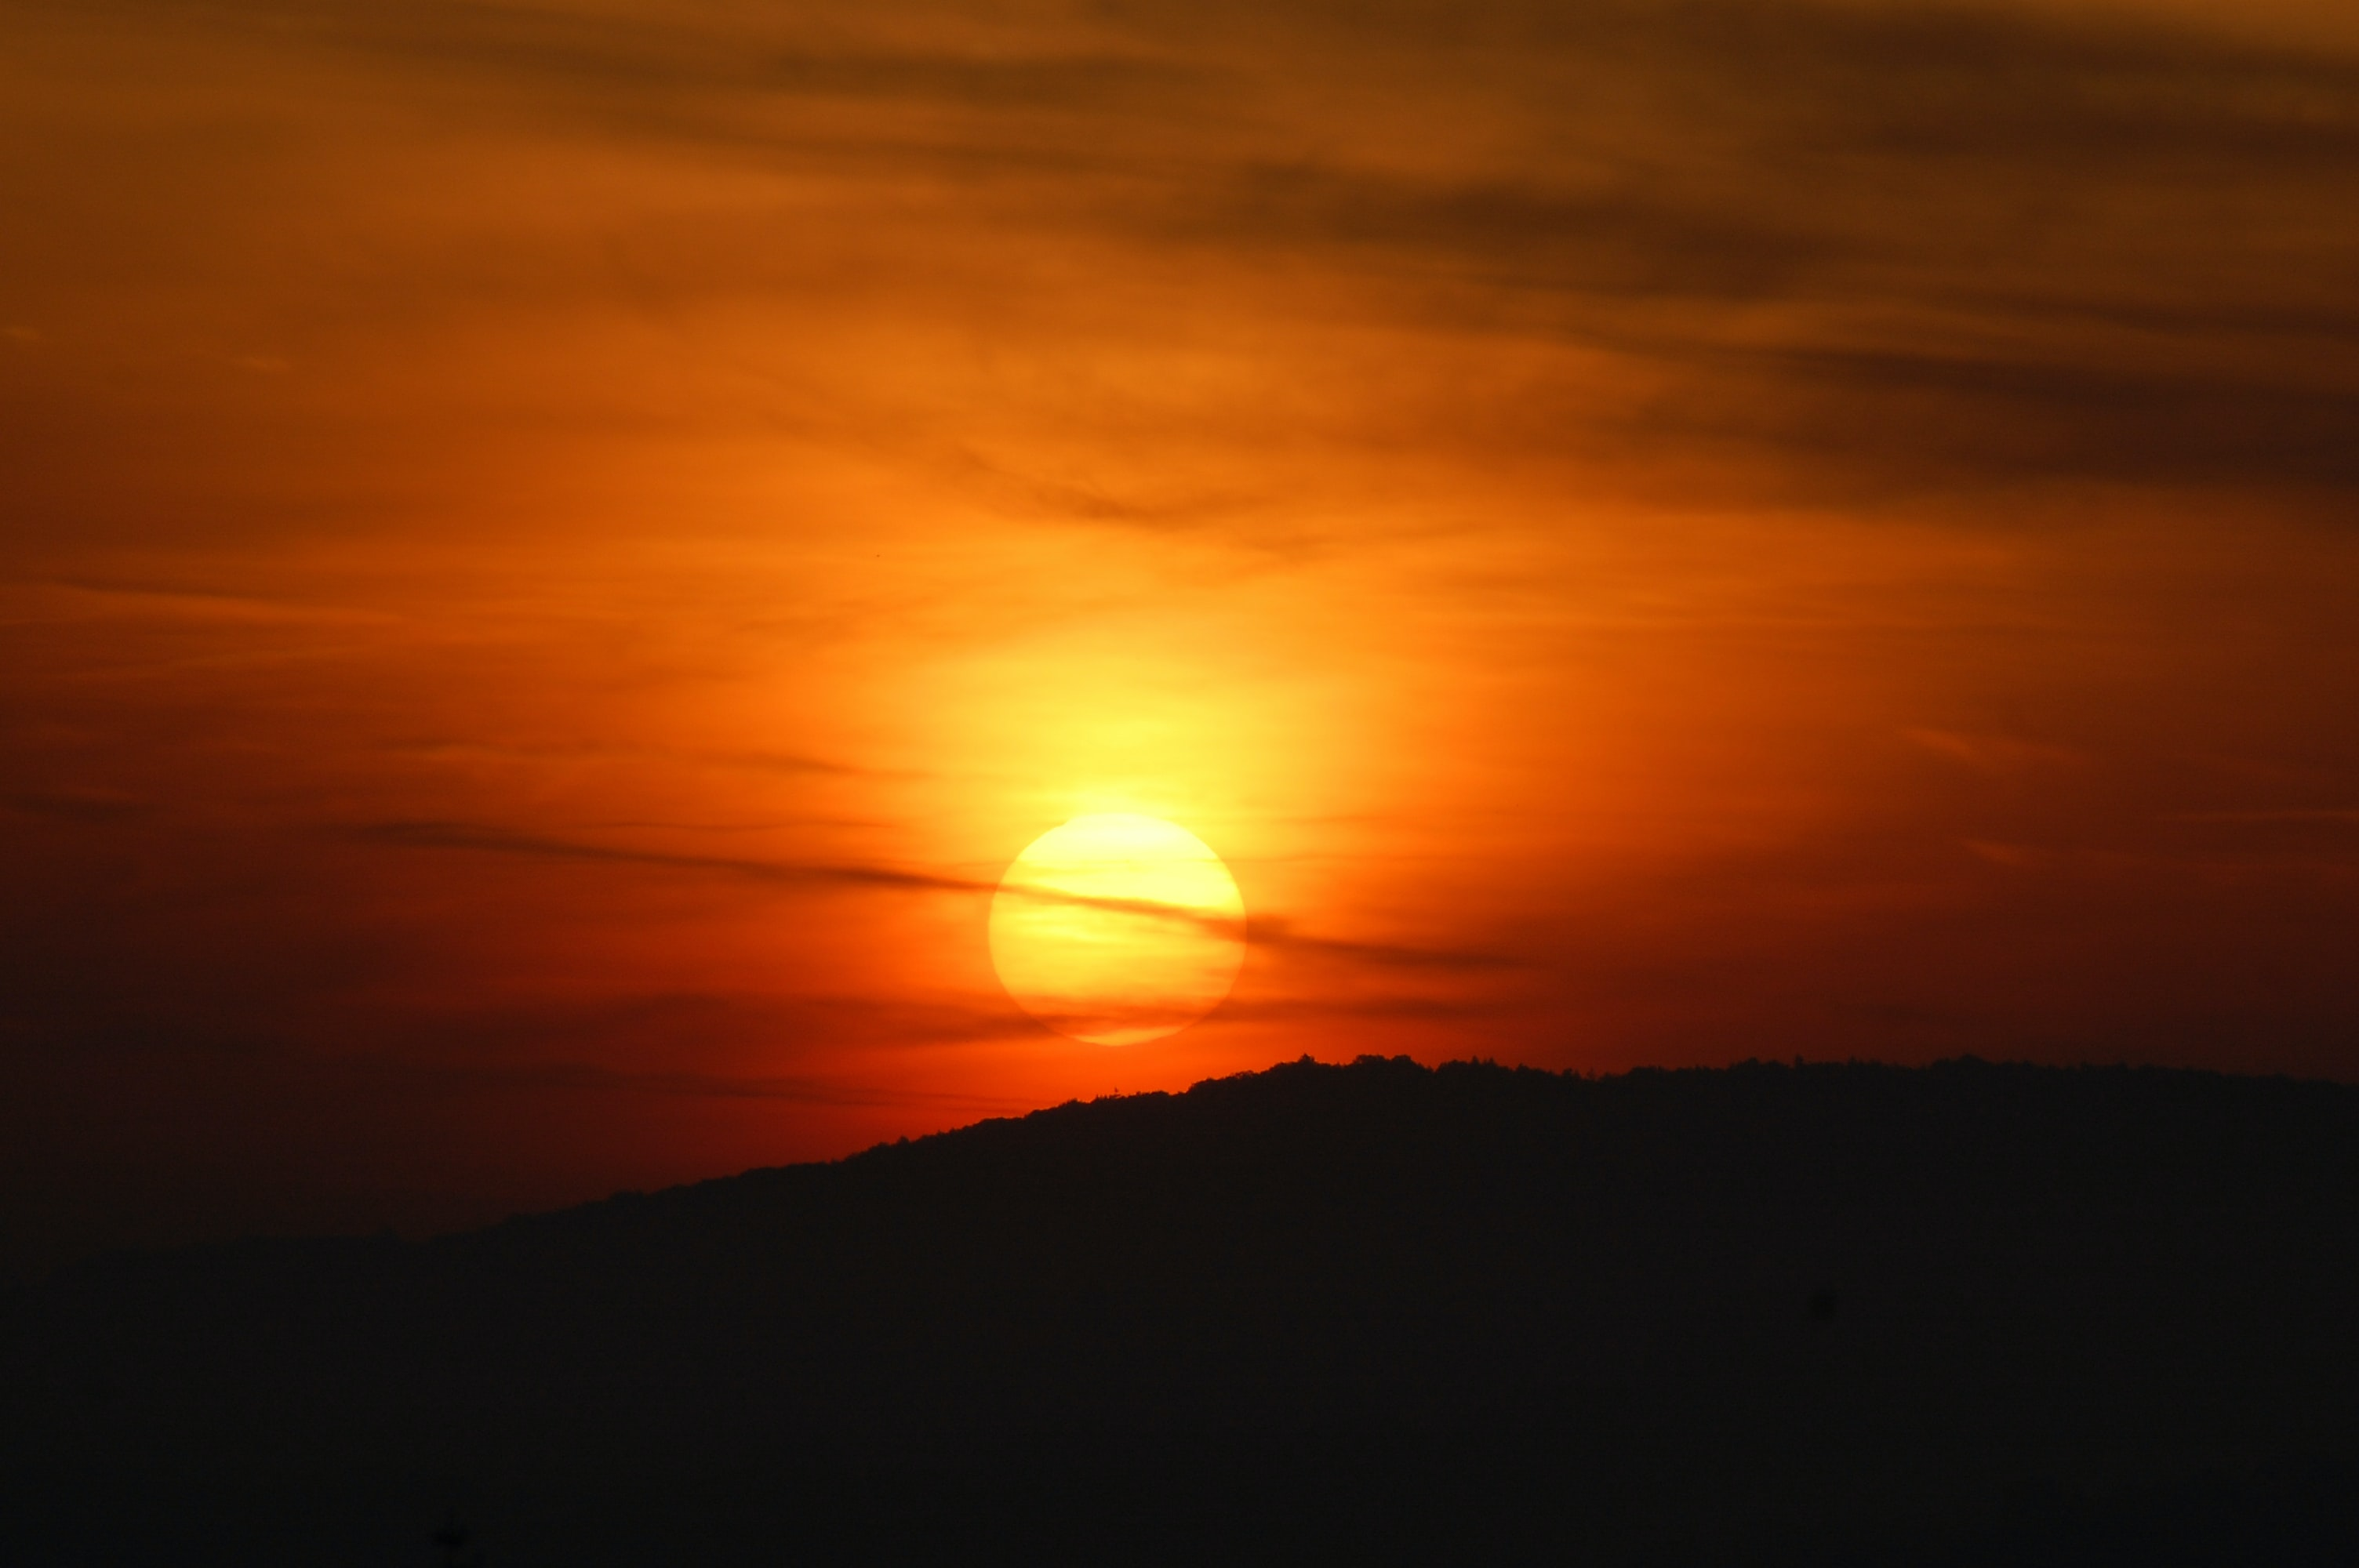 A deep orange sunset going down behind a hill at Jena.